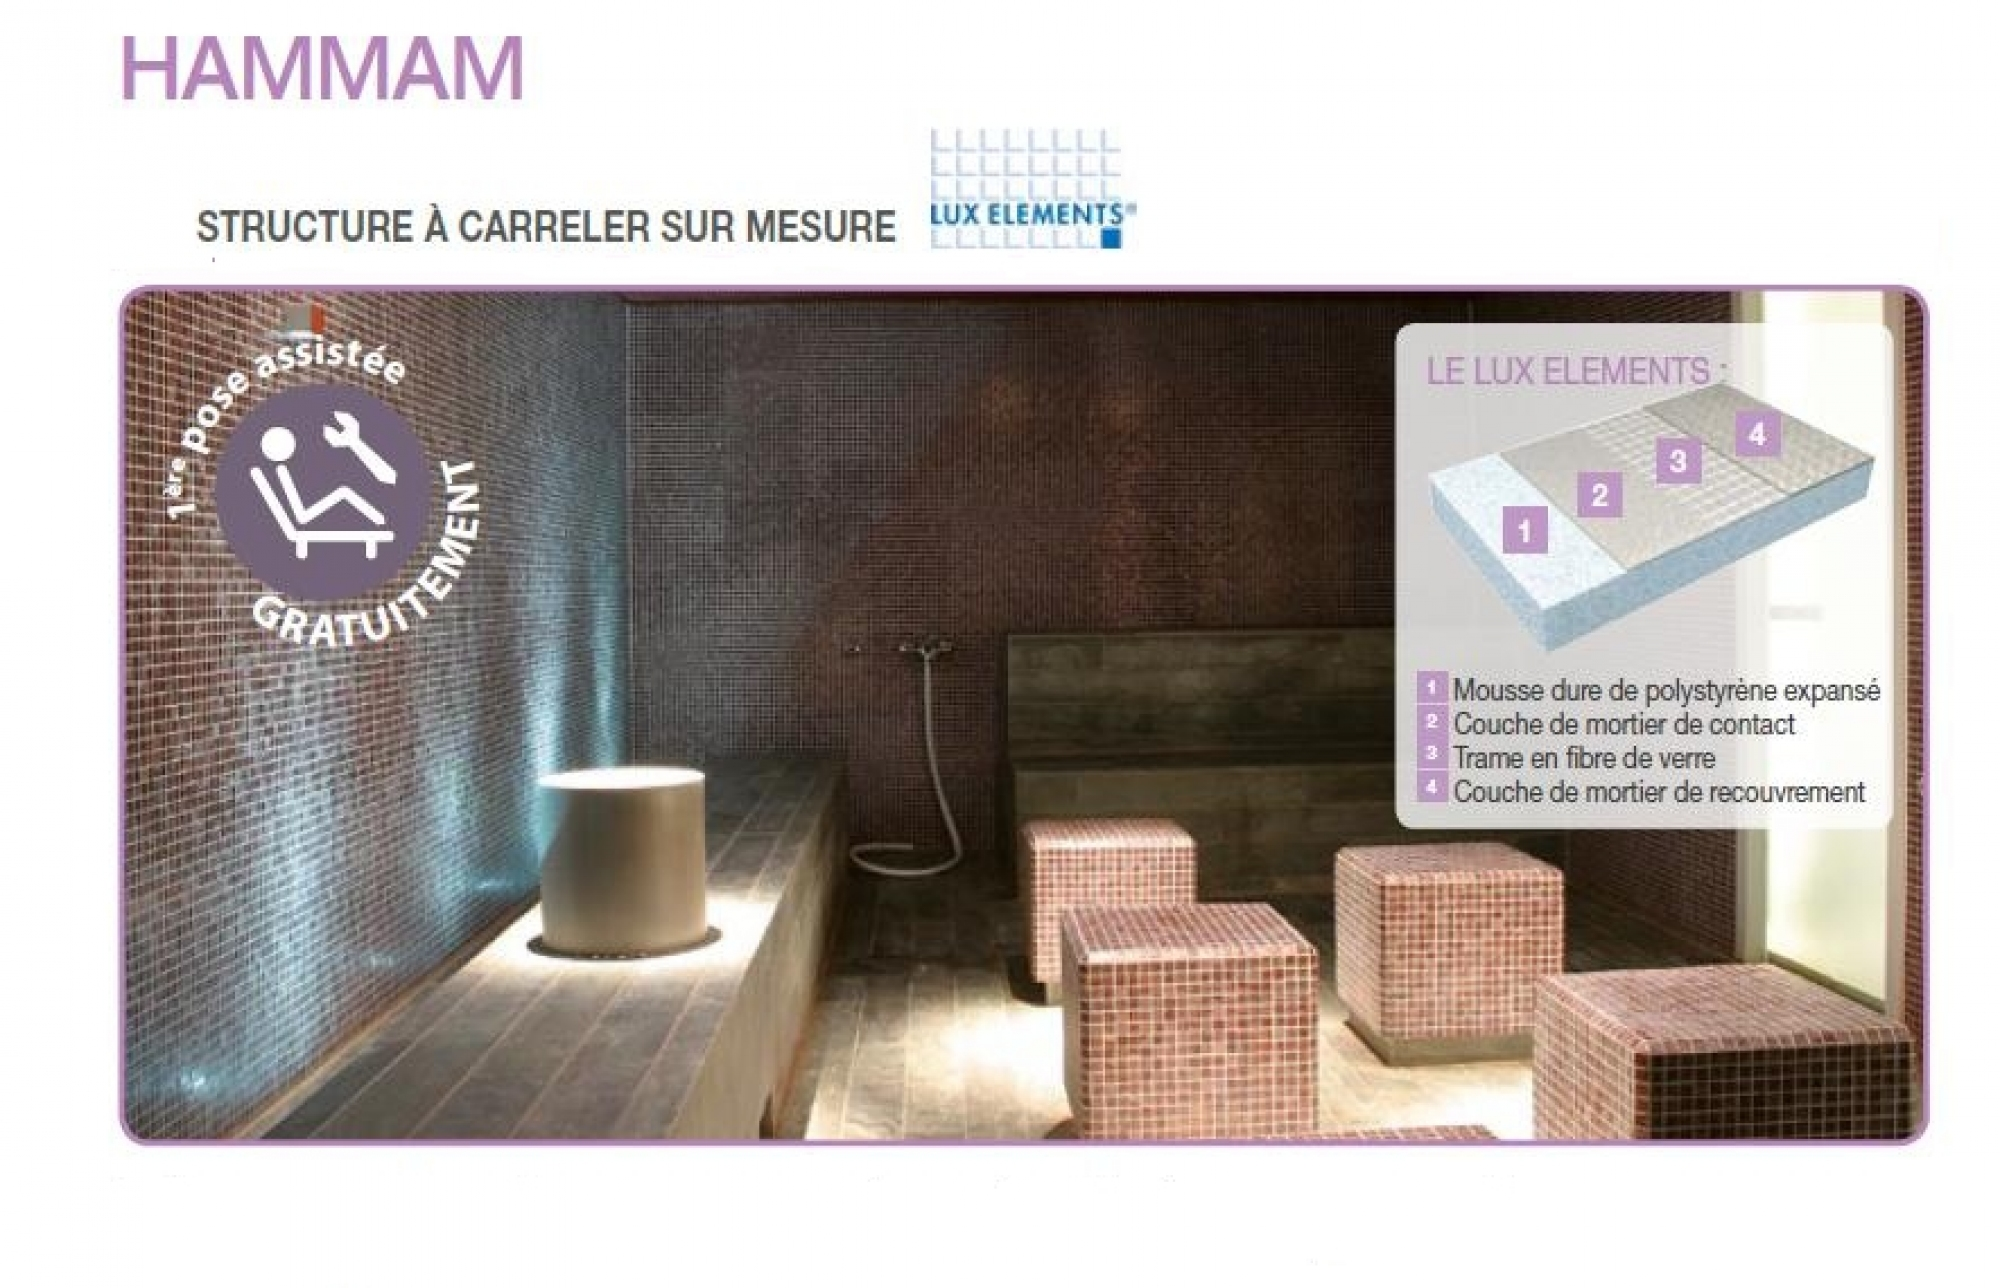 photo-hammam-a-carreler-sur-mesure